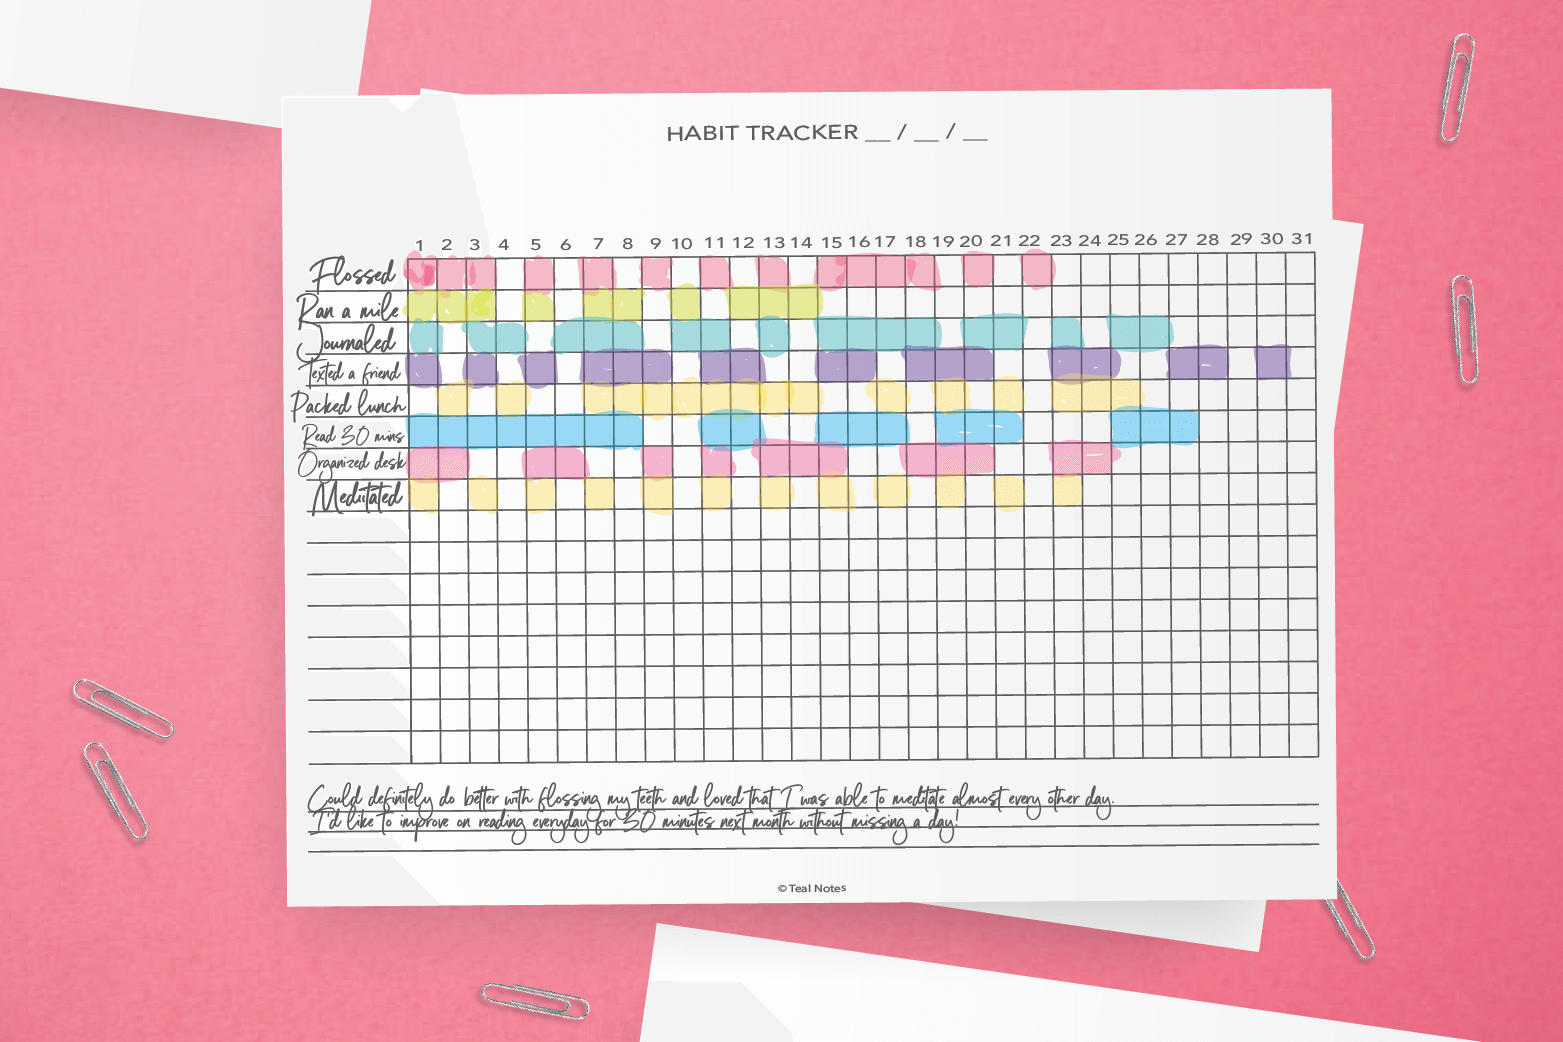 image about Habit Tracker Free Printable named Cost-free Printable Pattern Tracker PDF: The Top Pattern Tracker